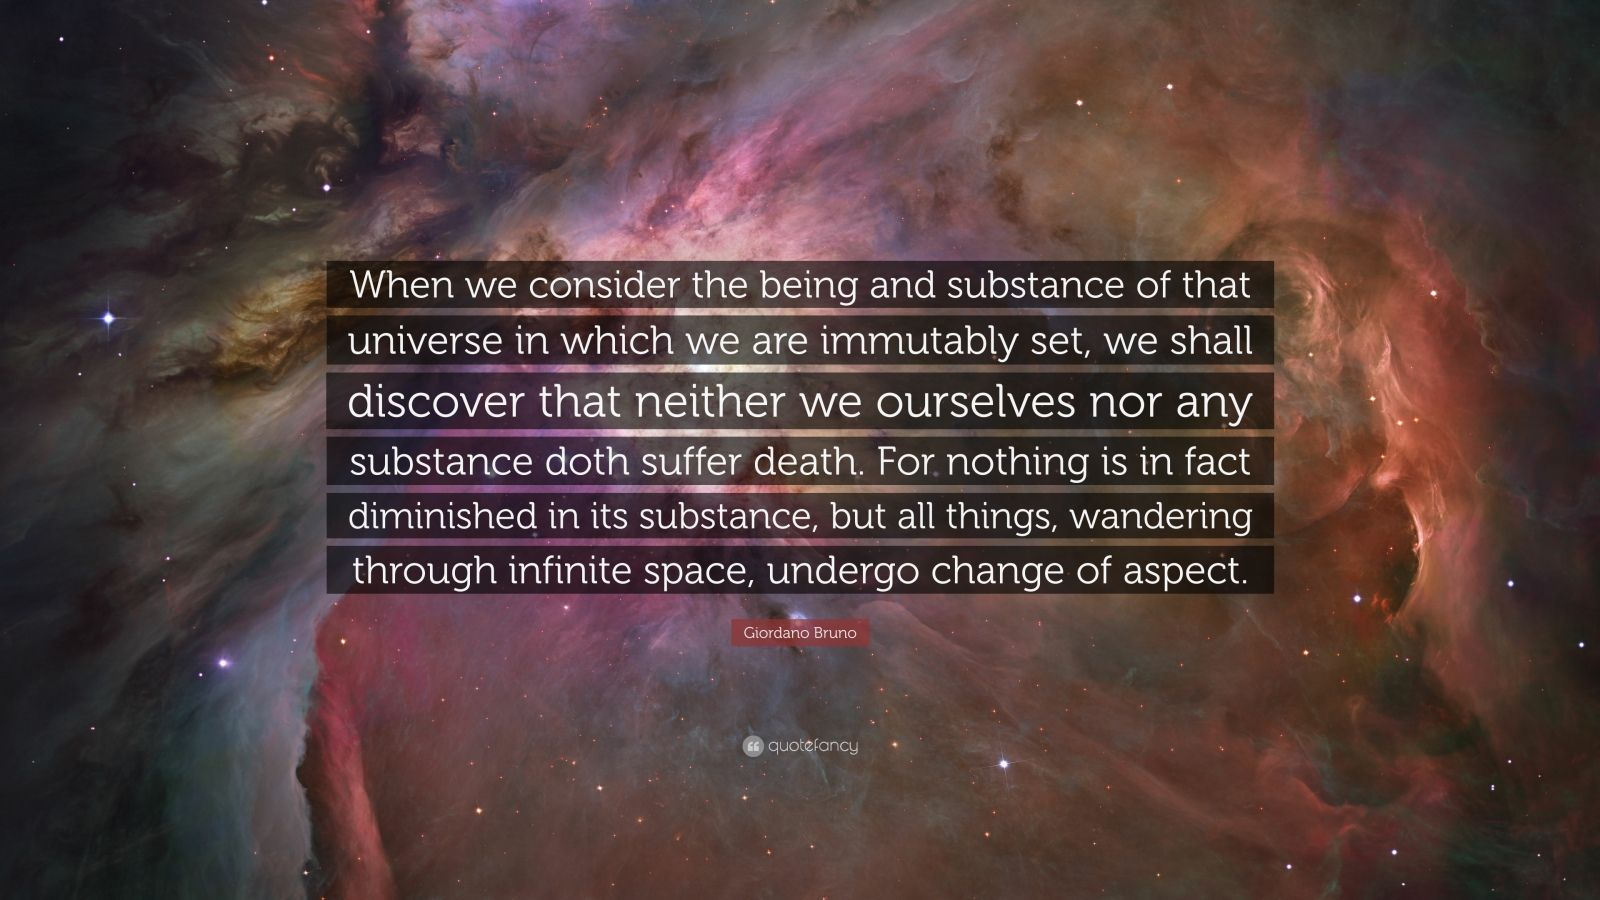 """Giordano Bruno Quote: """"When we consider the being and substance of that universe in which we are immutably set, we shall discover that neither we ourselves nor any substance doth suffer death. For nothing is in fact diminished in its substance, but all things, wandering through infinite space, undergo change of aspect."""""""